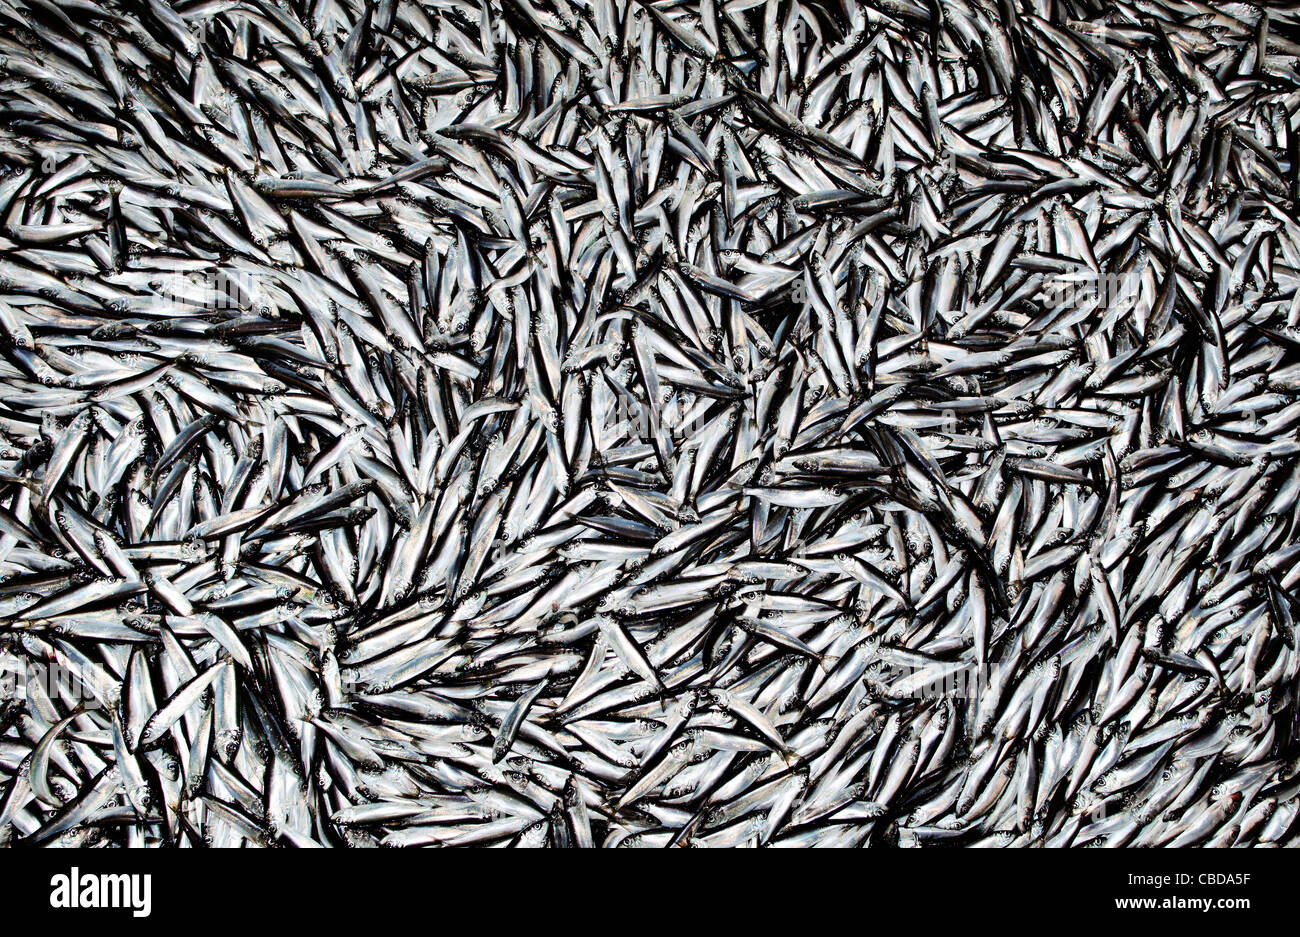 Baltic herring that has been trawled from the bottom between Finland and Sweden. - Stock Image